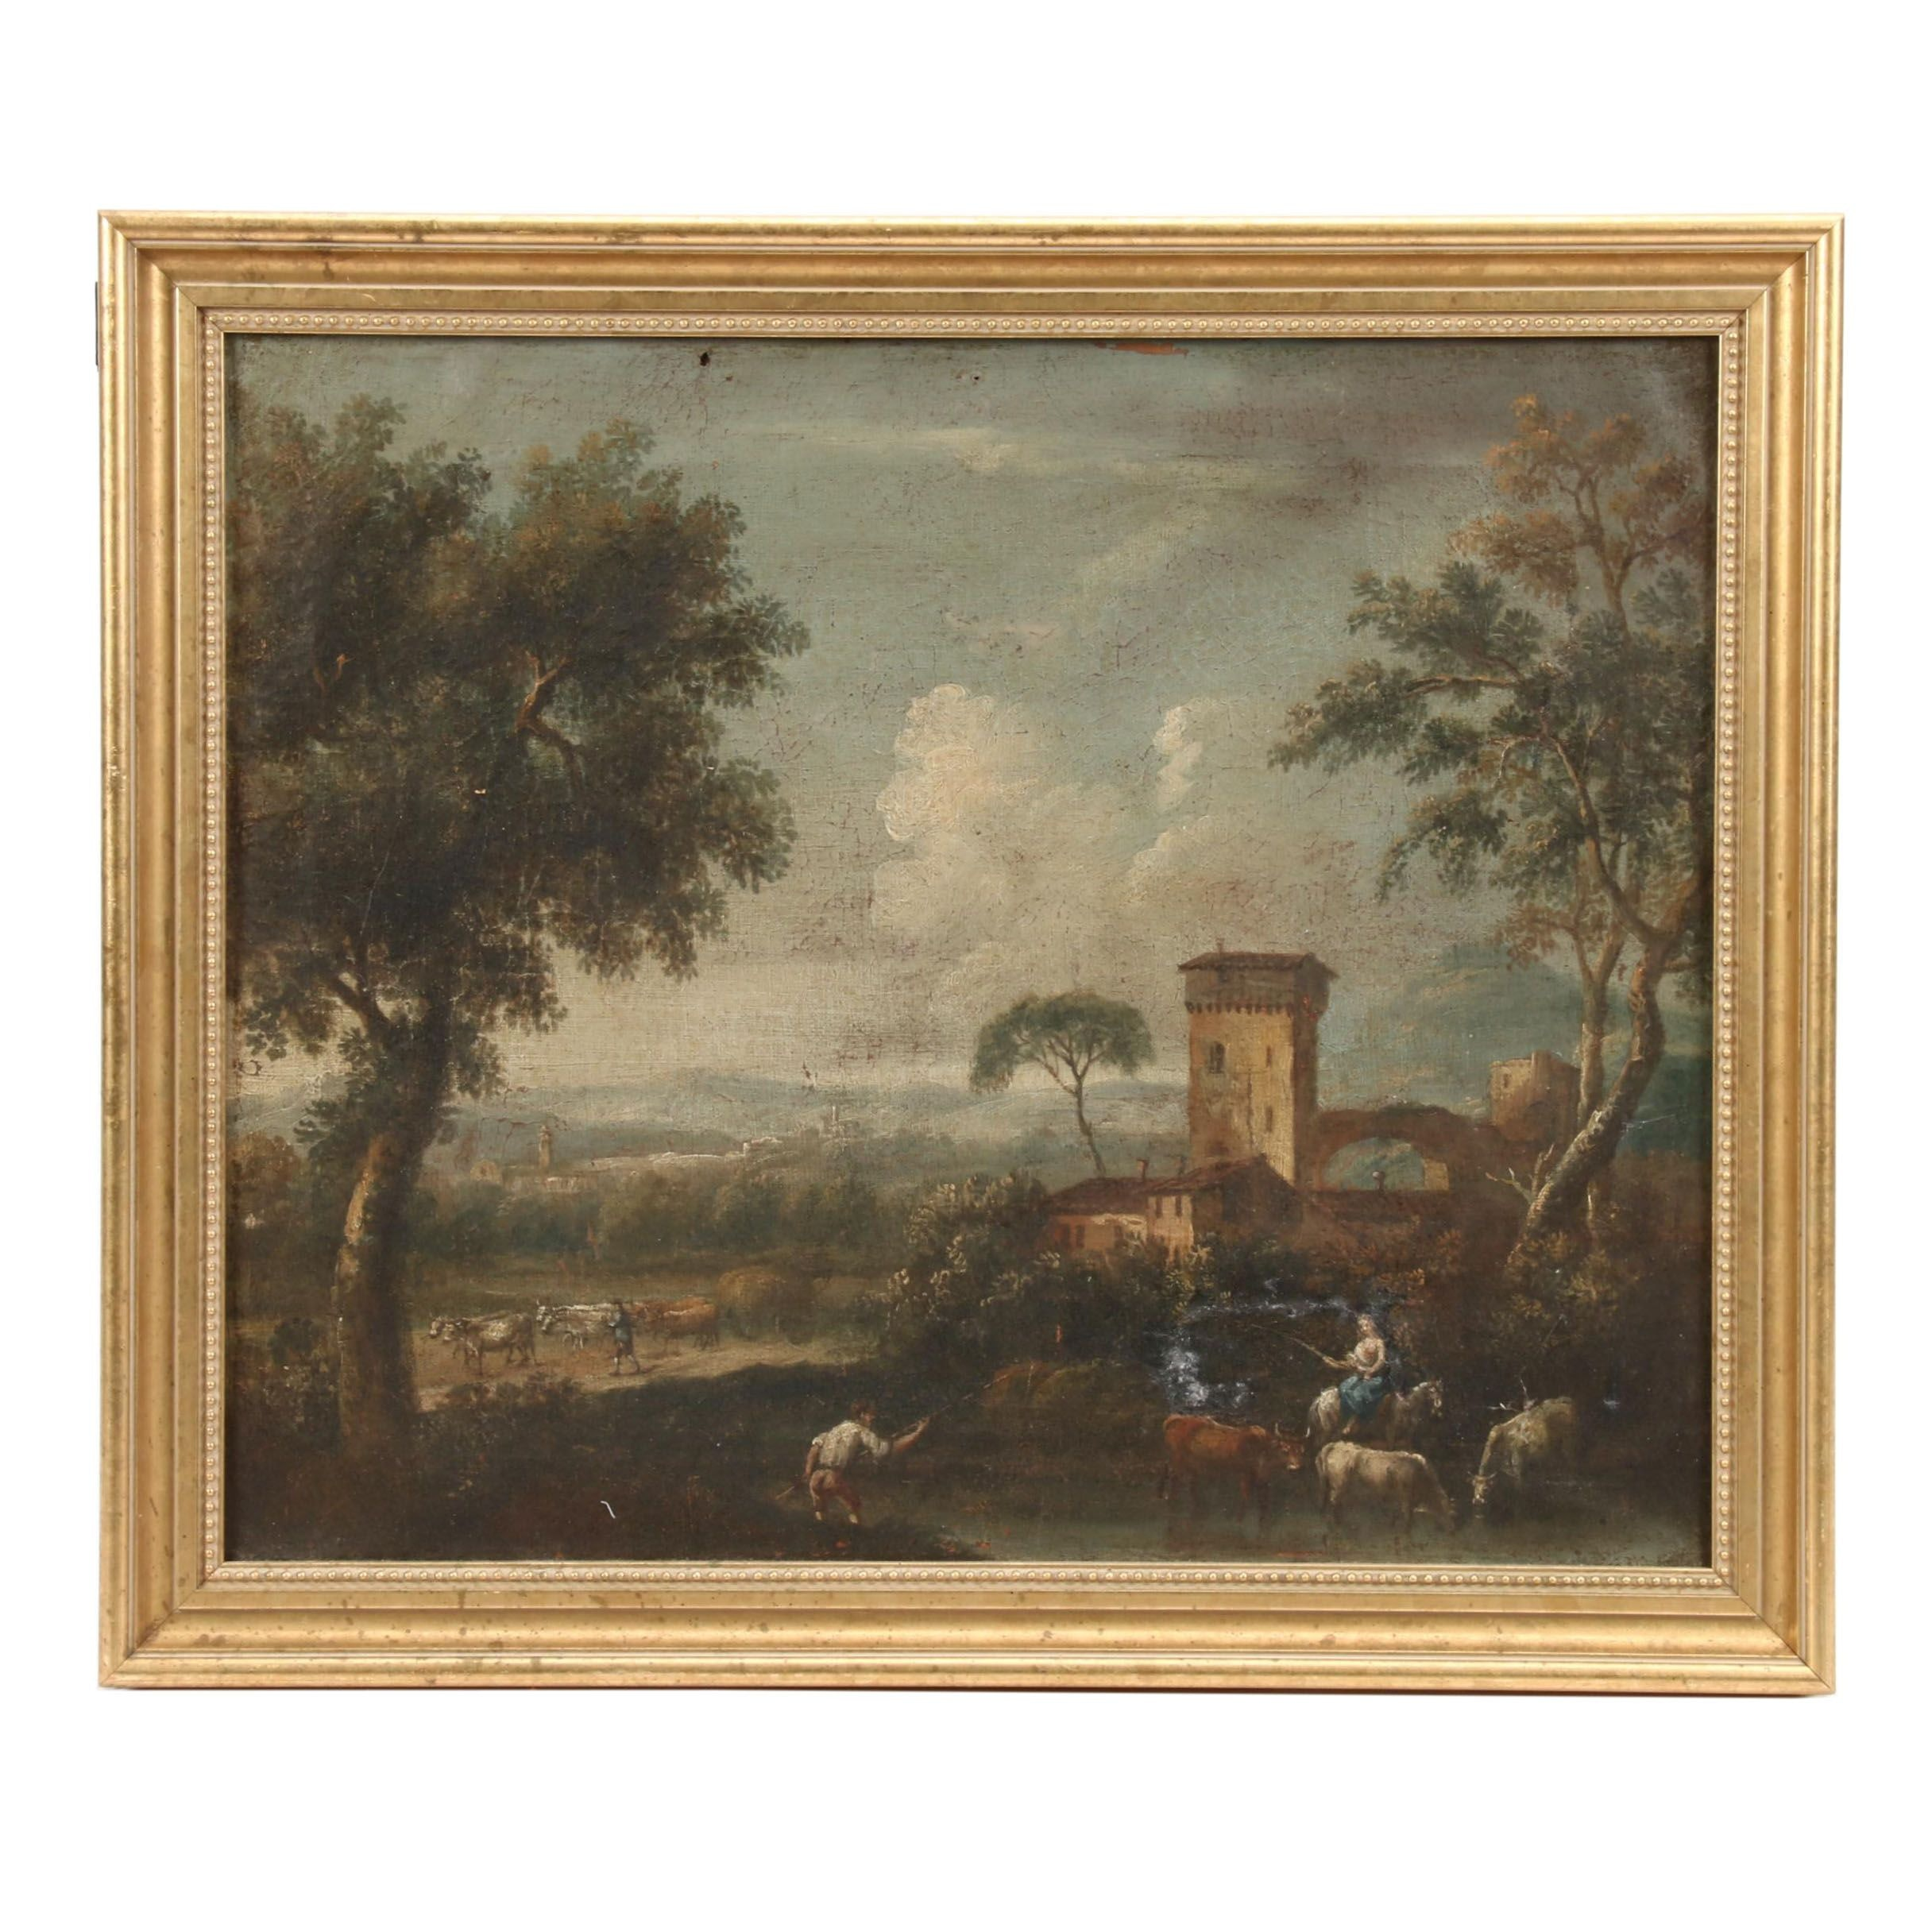 19th Century Pastoral Landscape Oil Painting